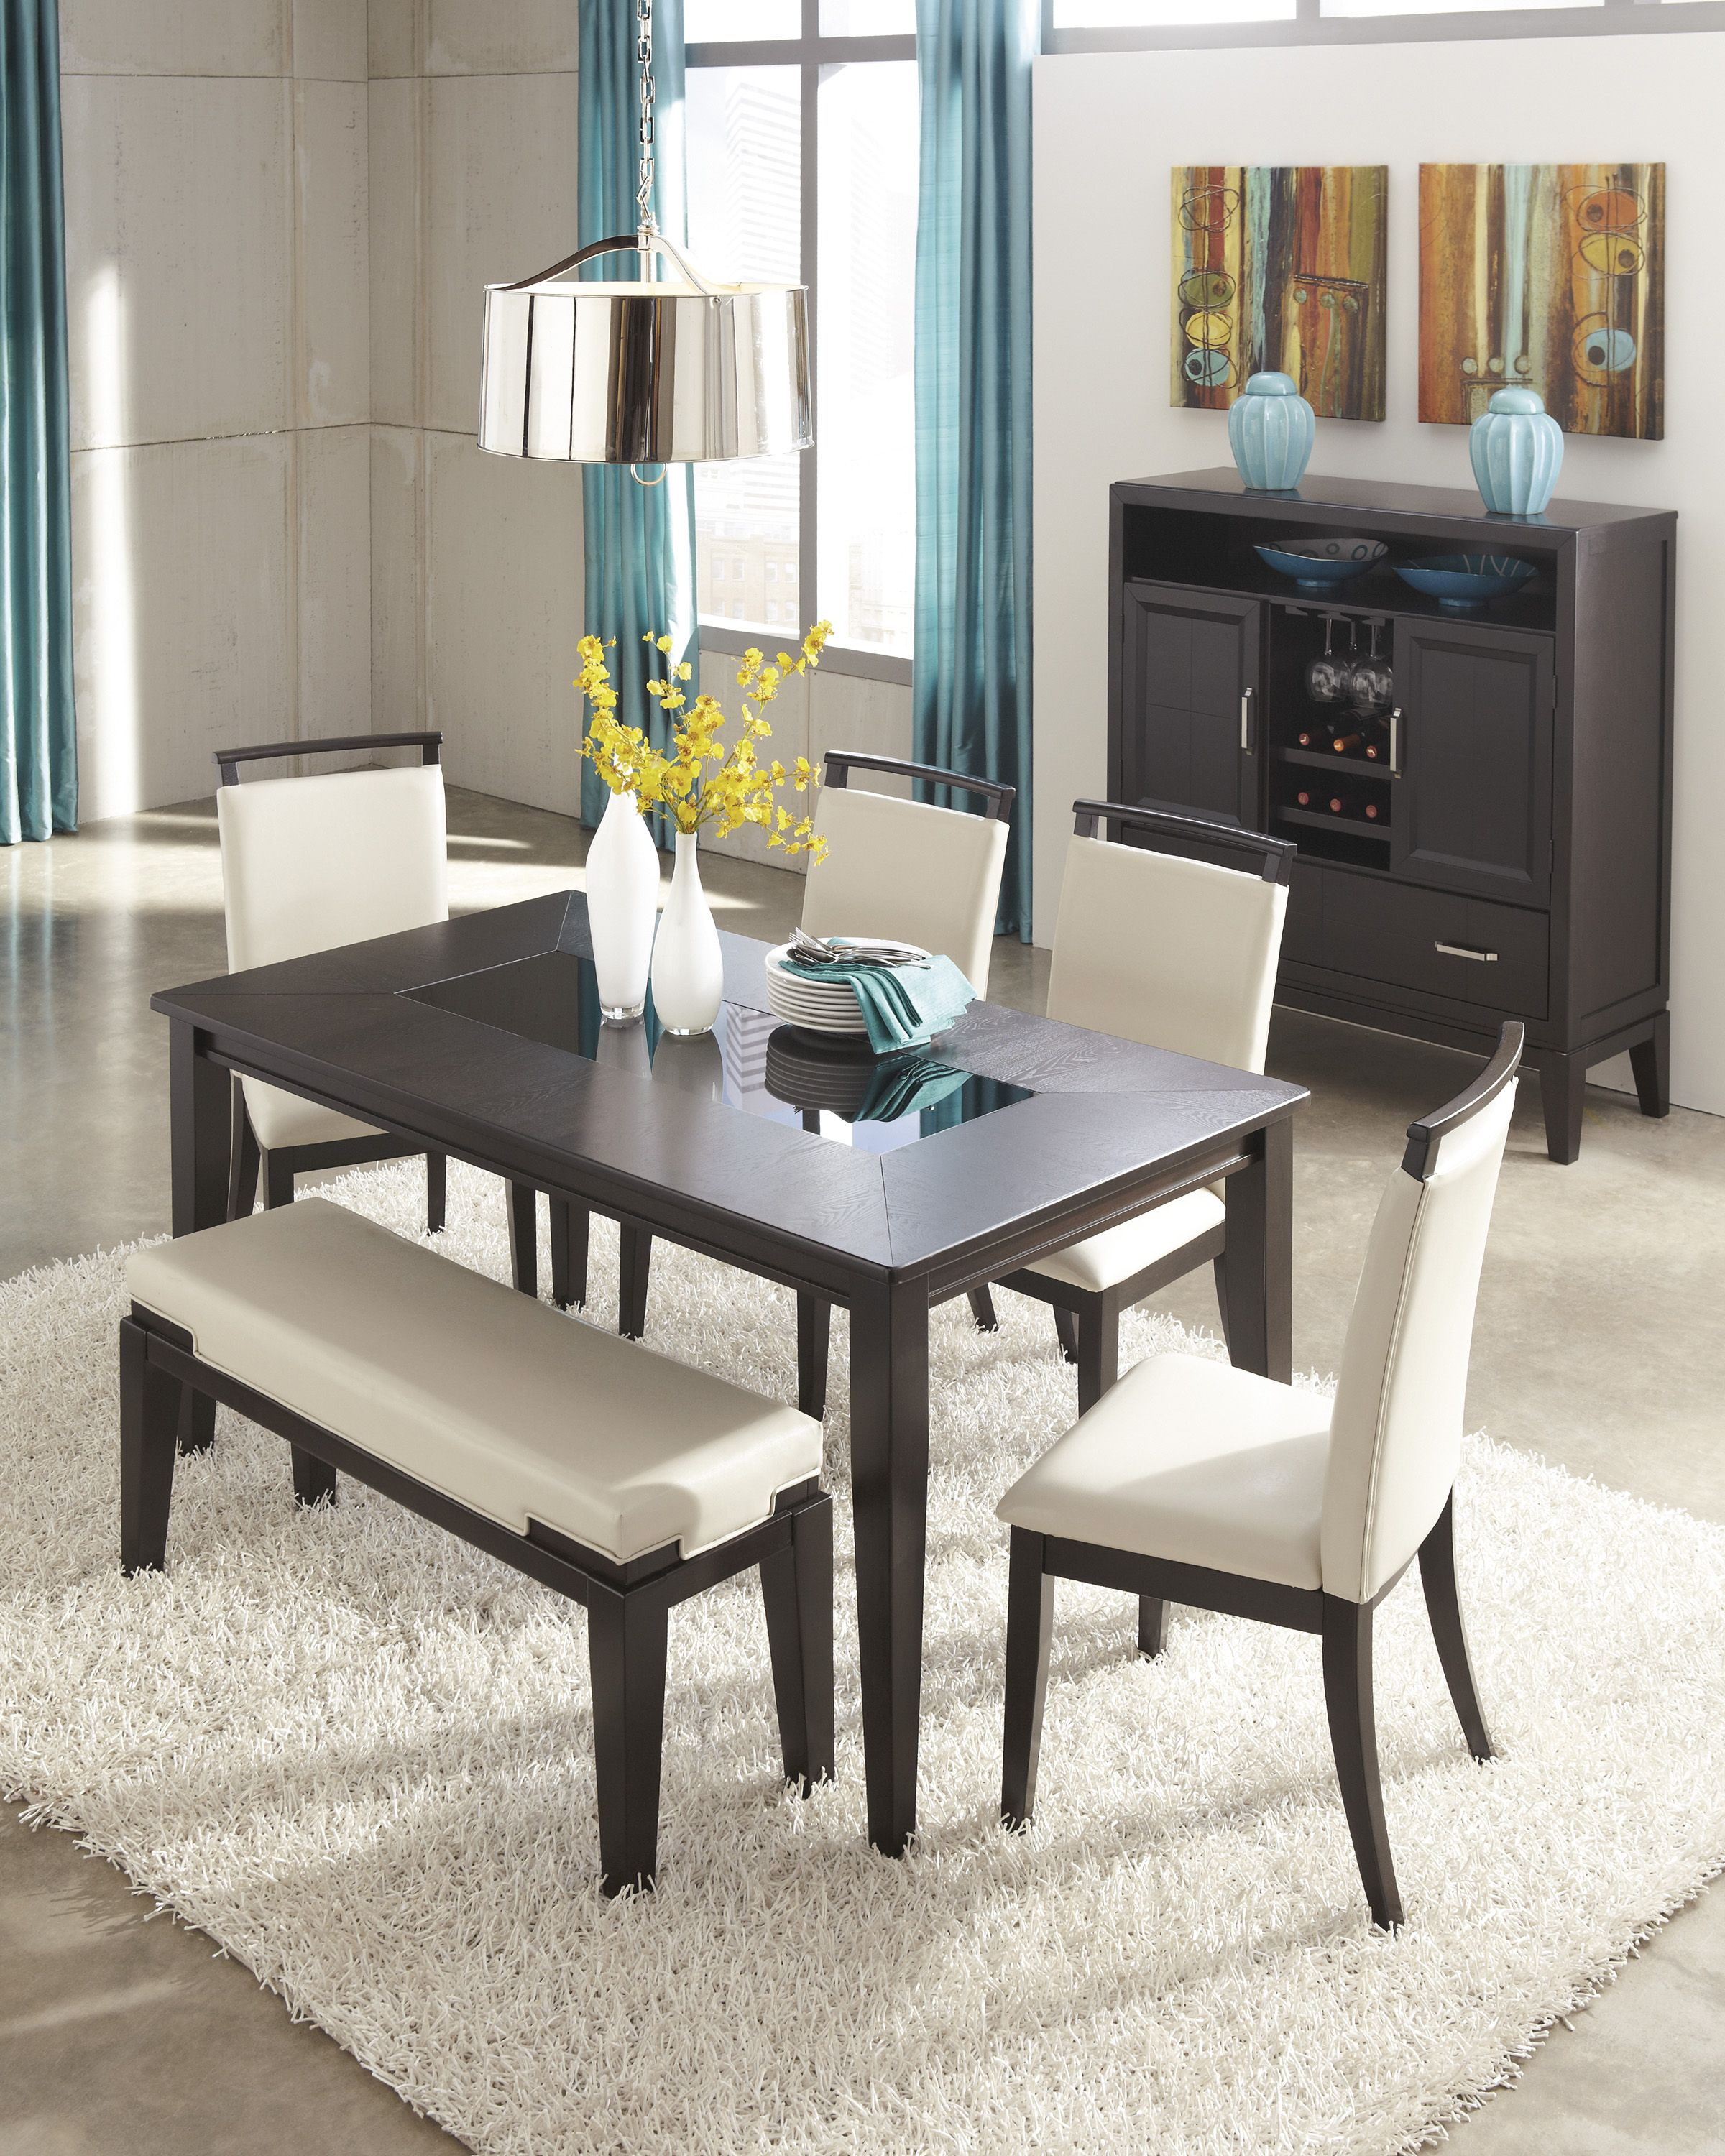 Warm Chocolate Browns Creams And Tans For The Dining Room  Theo New Dining Room Sets Ashley Furniture Inspiration Design